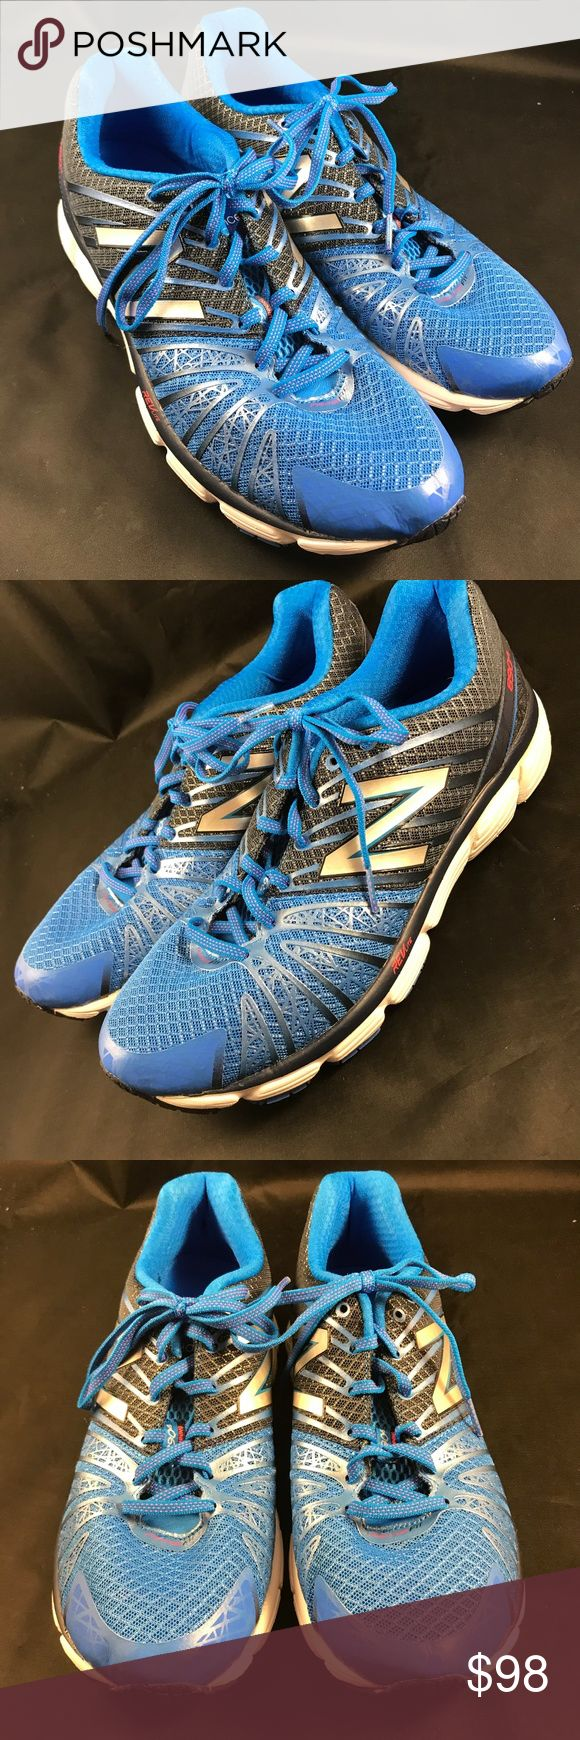 NEW BALANCE Revlite 890v5 Blue Mens 10 D New Balance Light Weight Men's Running Course REVLITE 890v5 M890BB5 Blue 10 Mint condition worn once New Balance Shoes Athletic Shoes